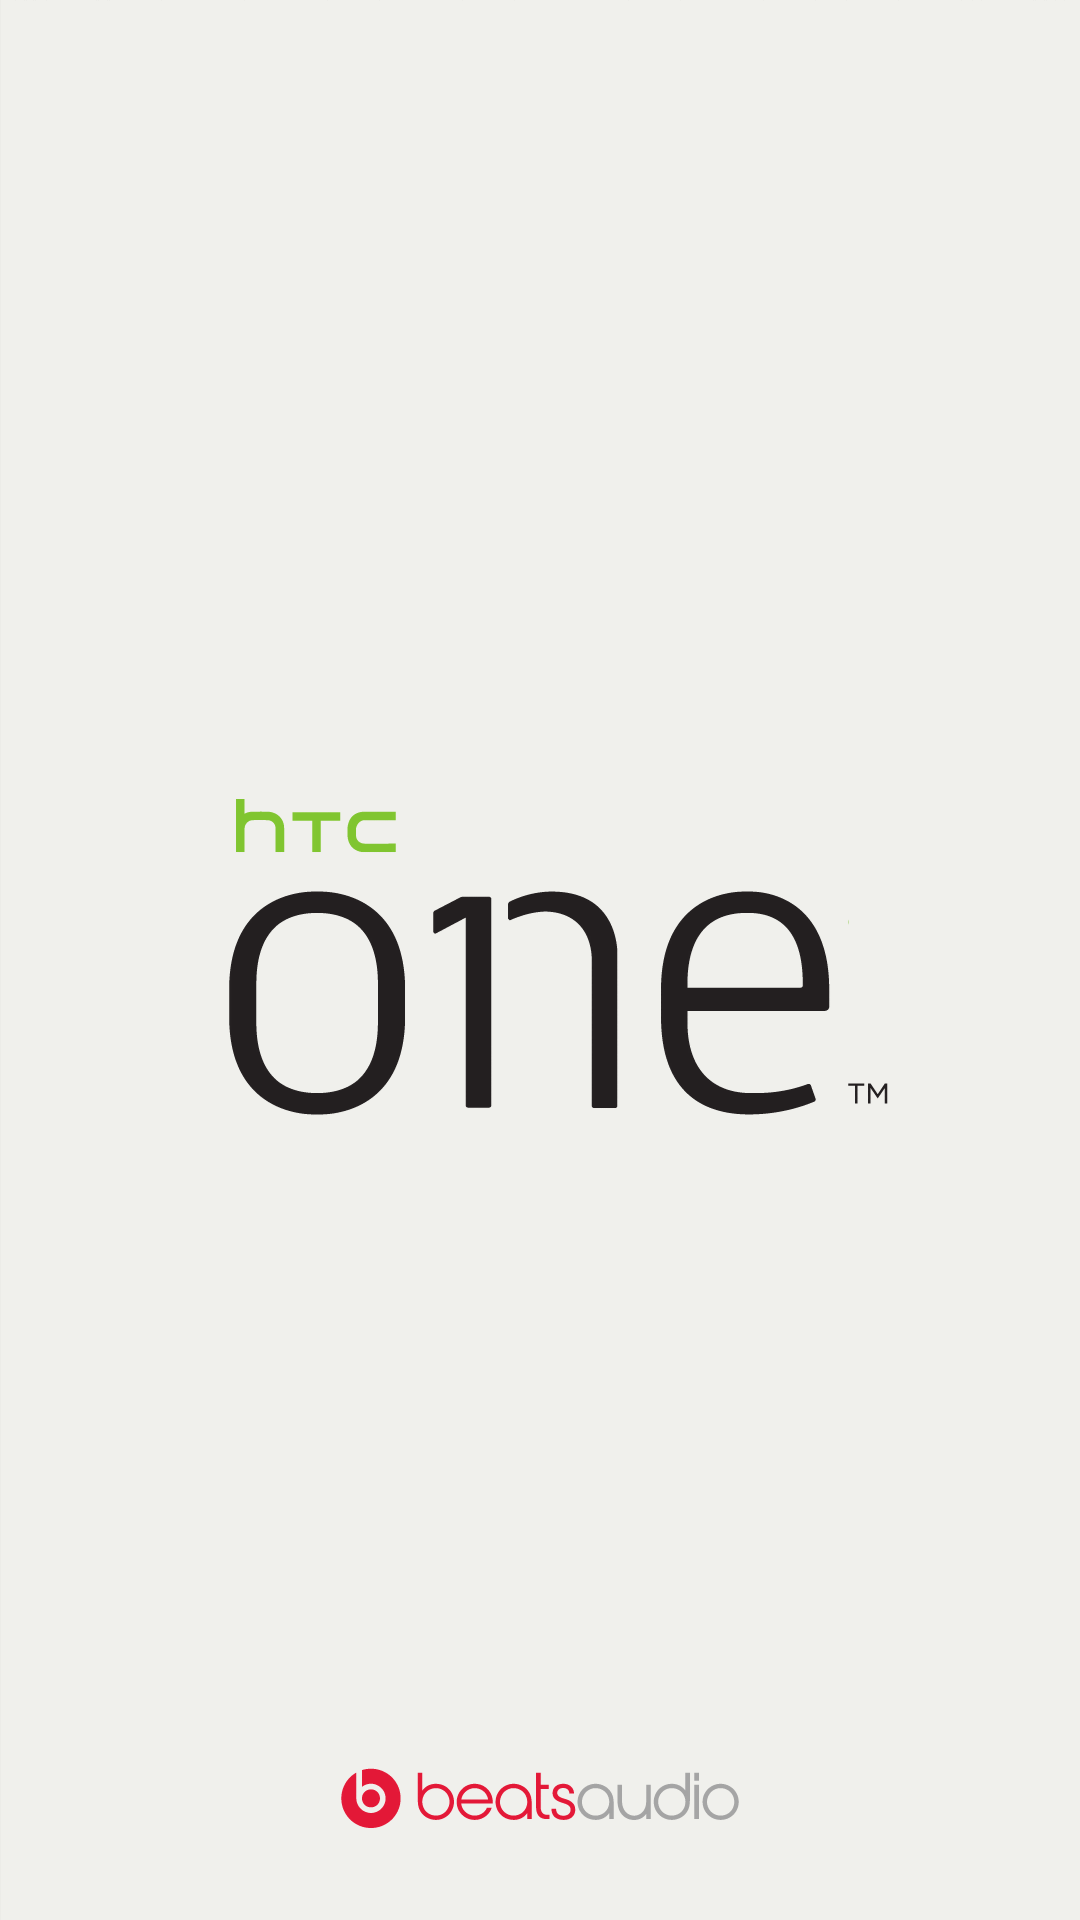 Installer la ROM Android Revolution HD 71 1 FR sous HTC ONE (M7